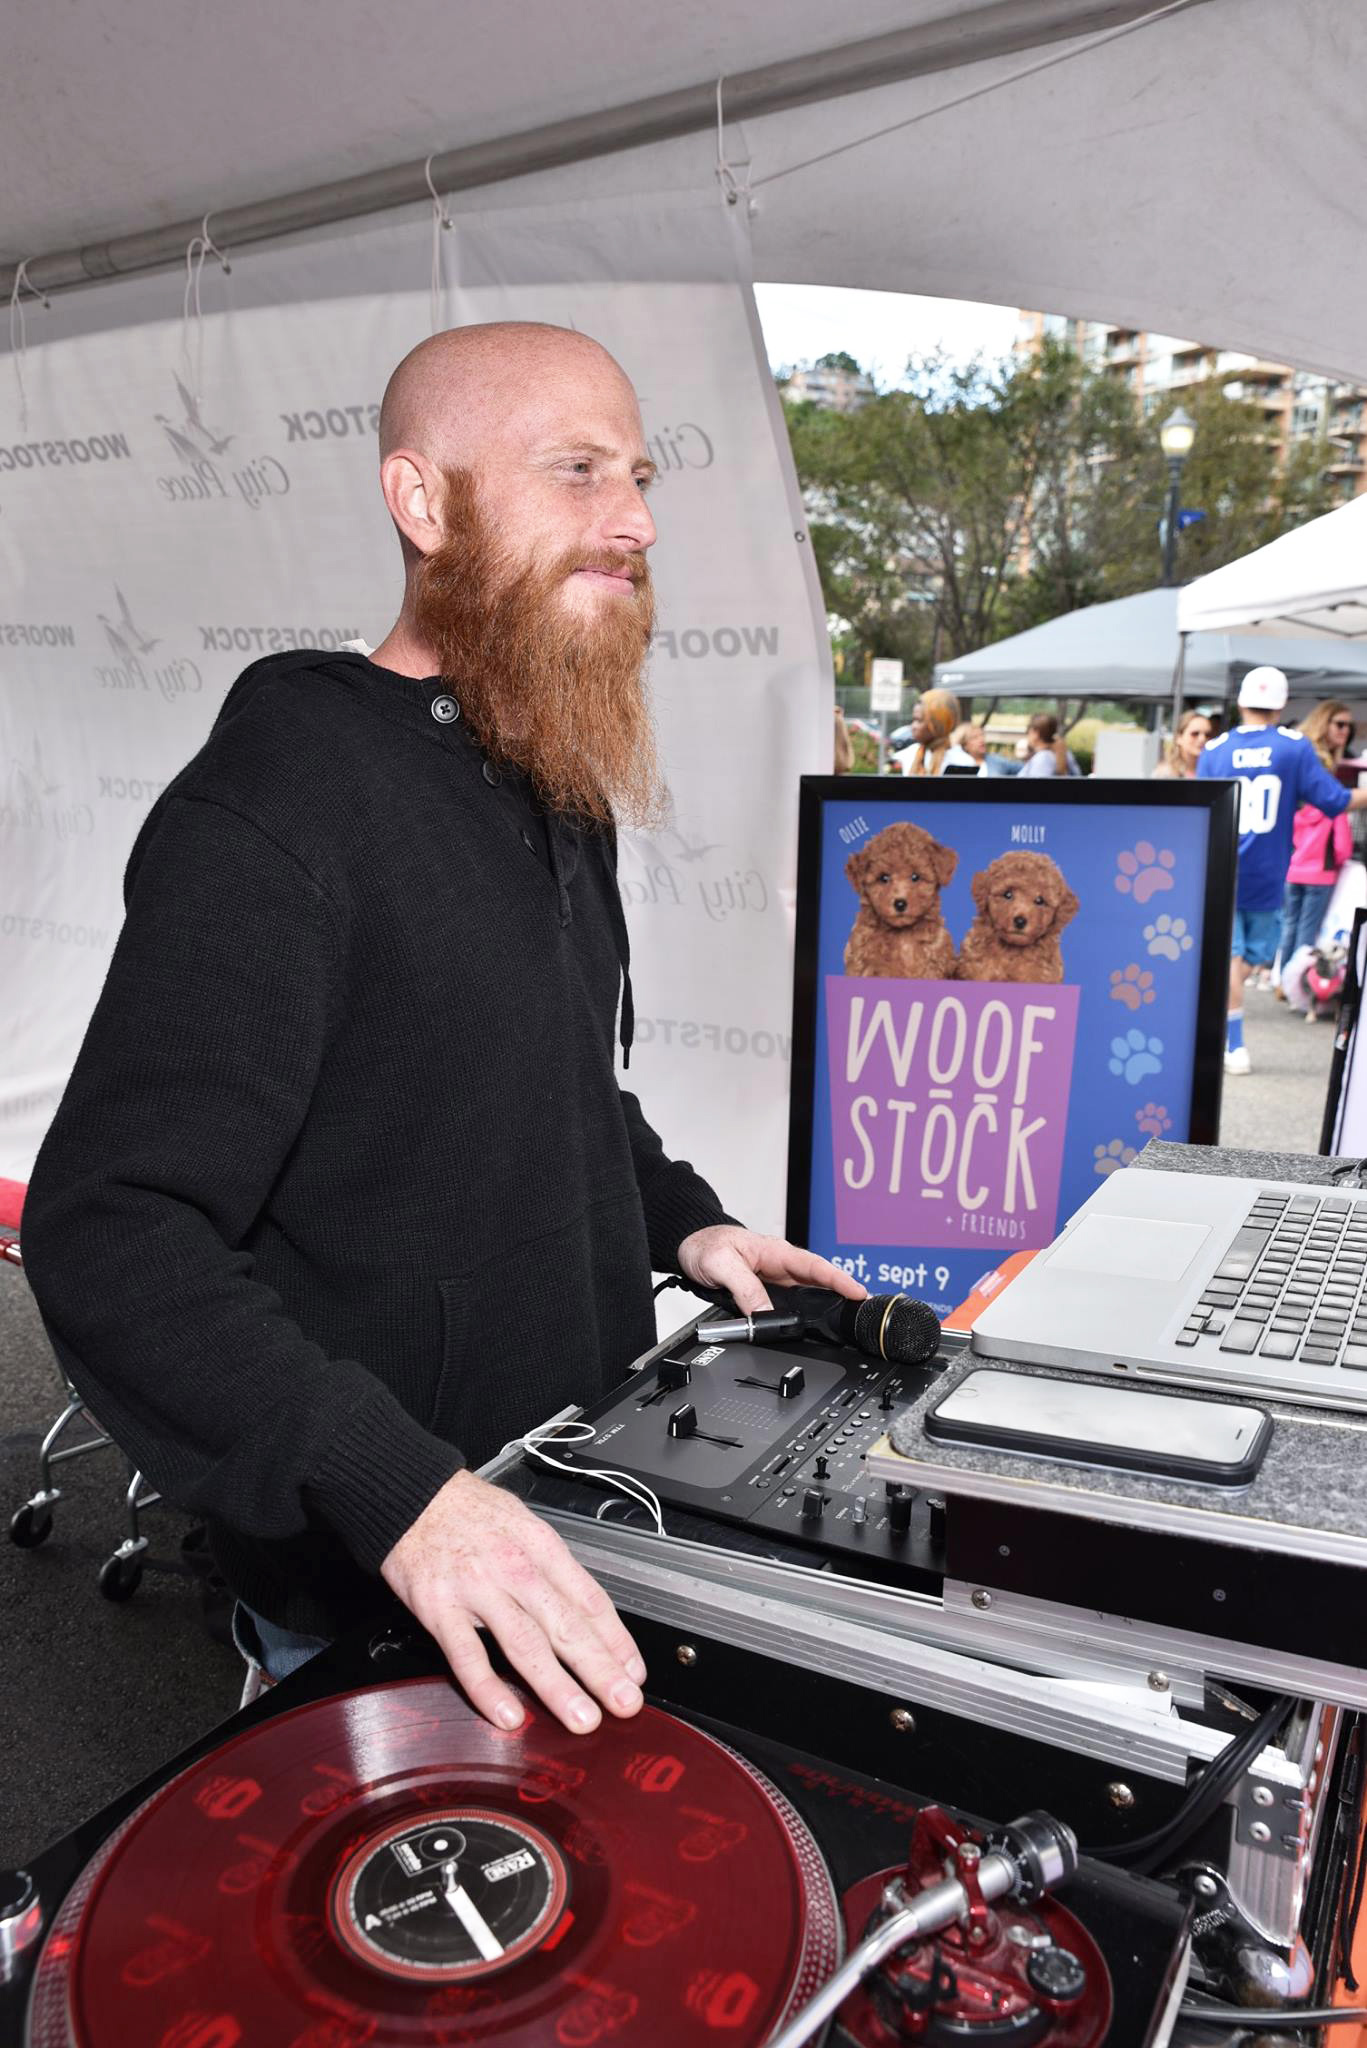 City Place - Woofstock 2017